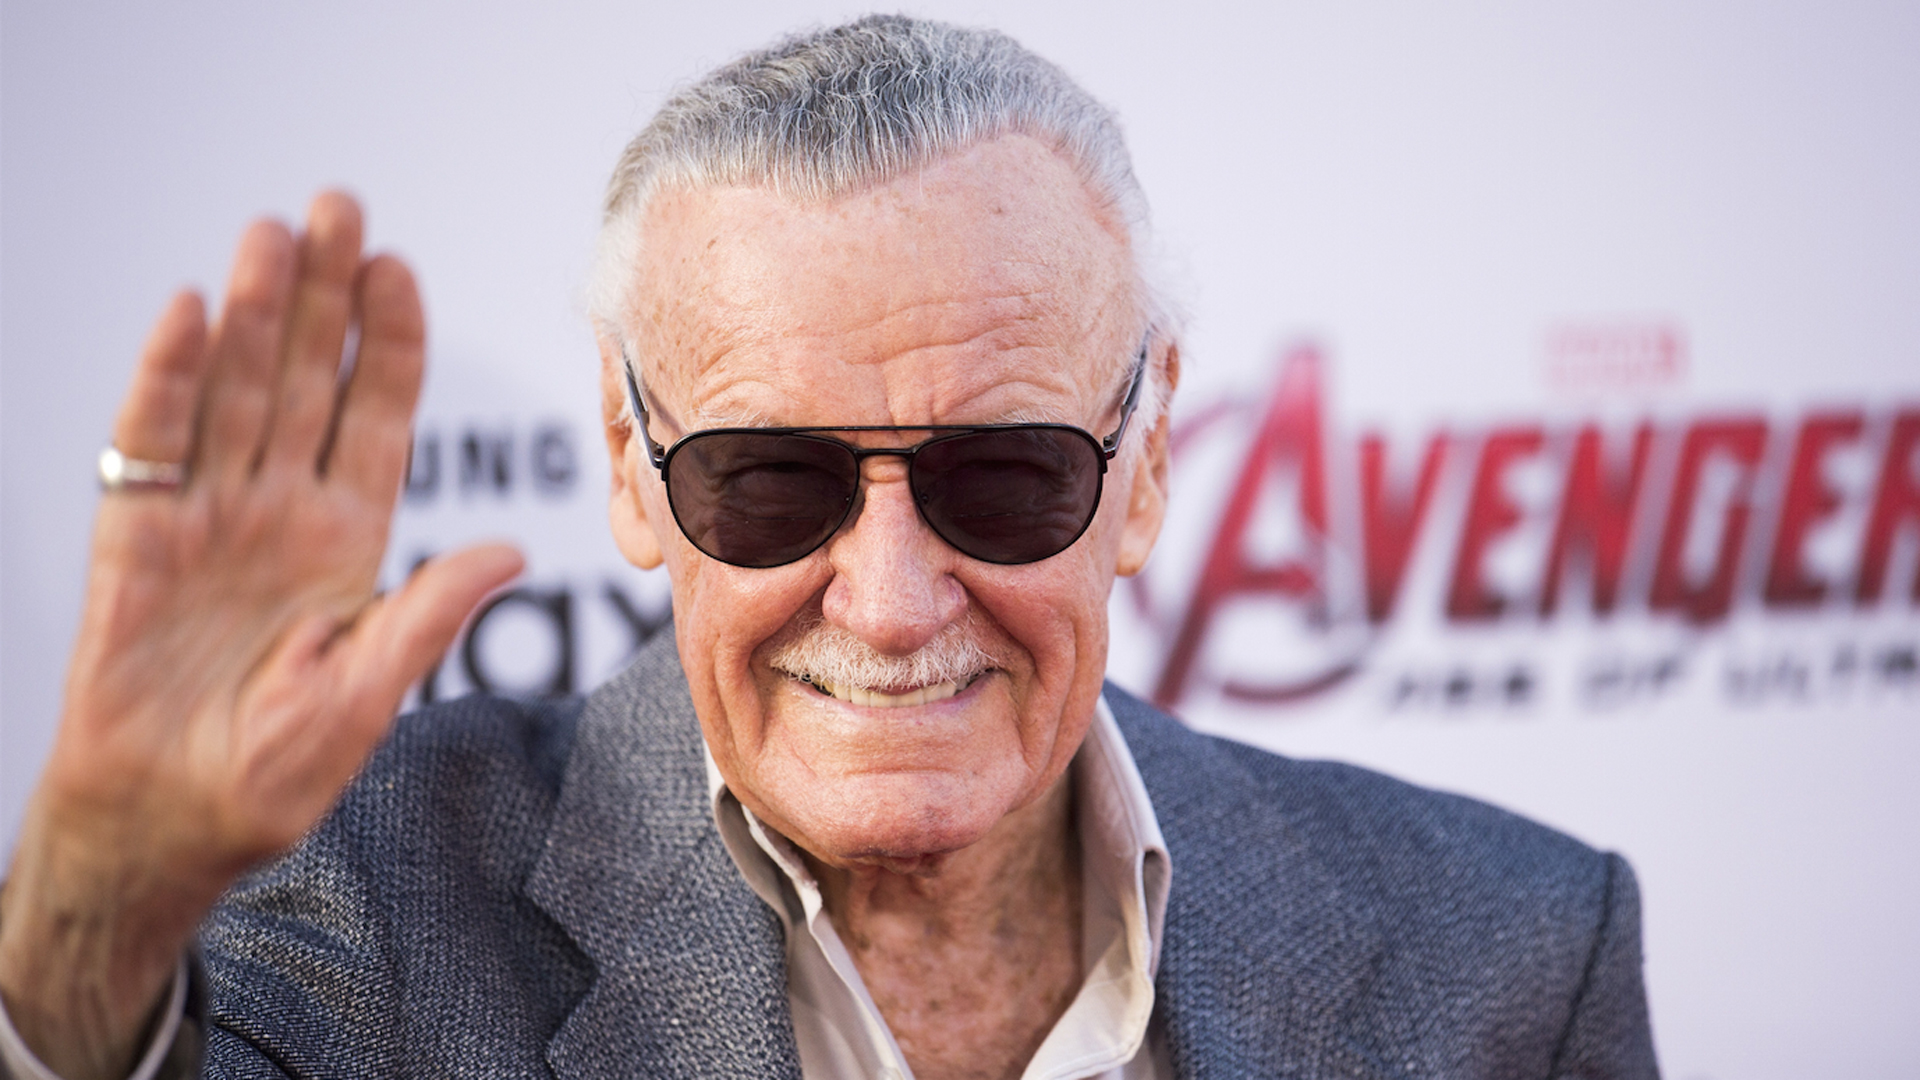 Stan Lee attends the premiere of Marvel's 'Avengers: Age Of Ultron' at the Dolby Theatre on April 13, 2015 in Hollywood. (Credit: Robyn Beck/AFP/Getty Images)